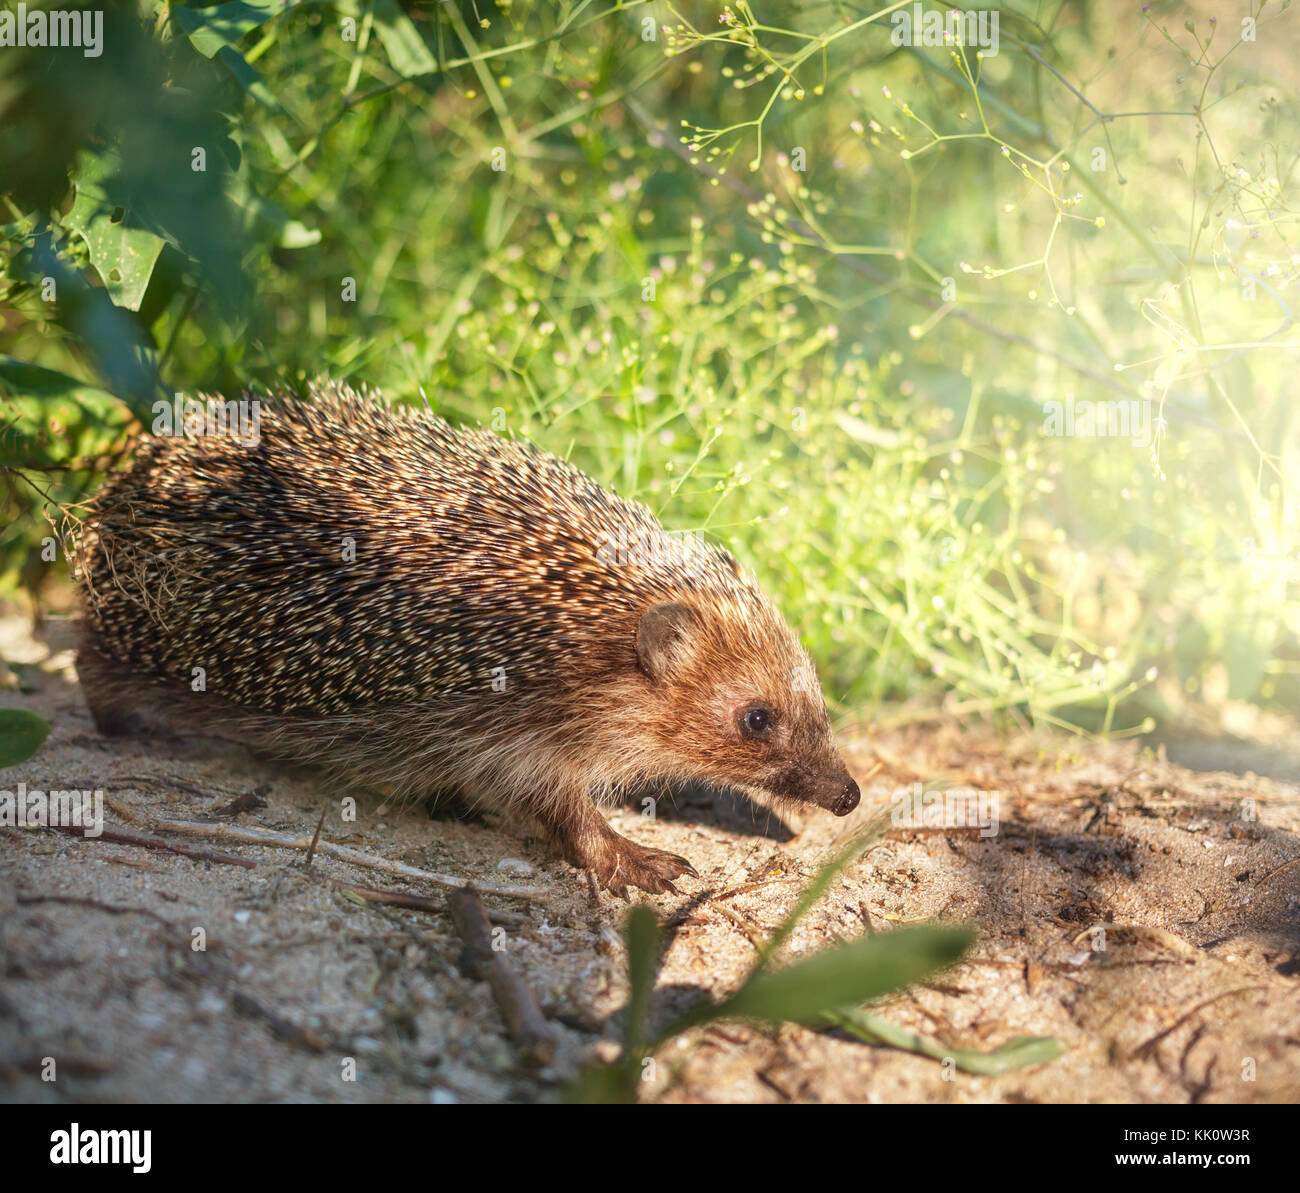 Hedgehog - Stock Image